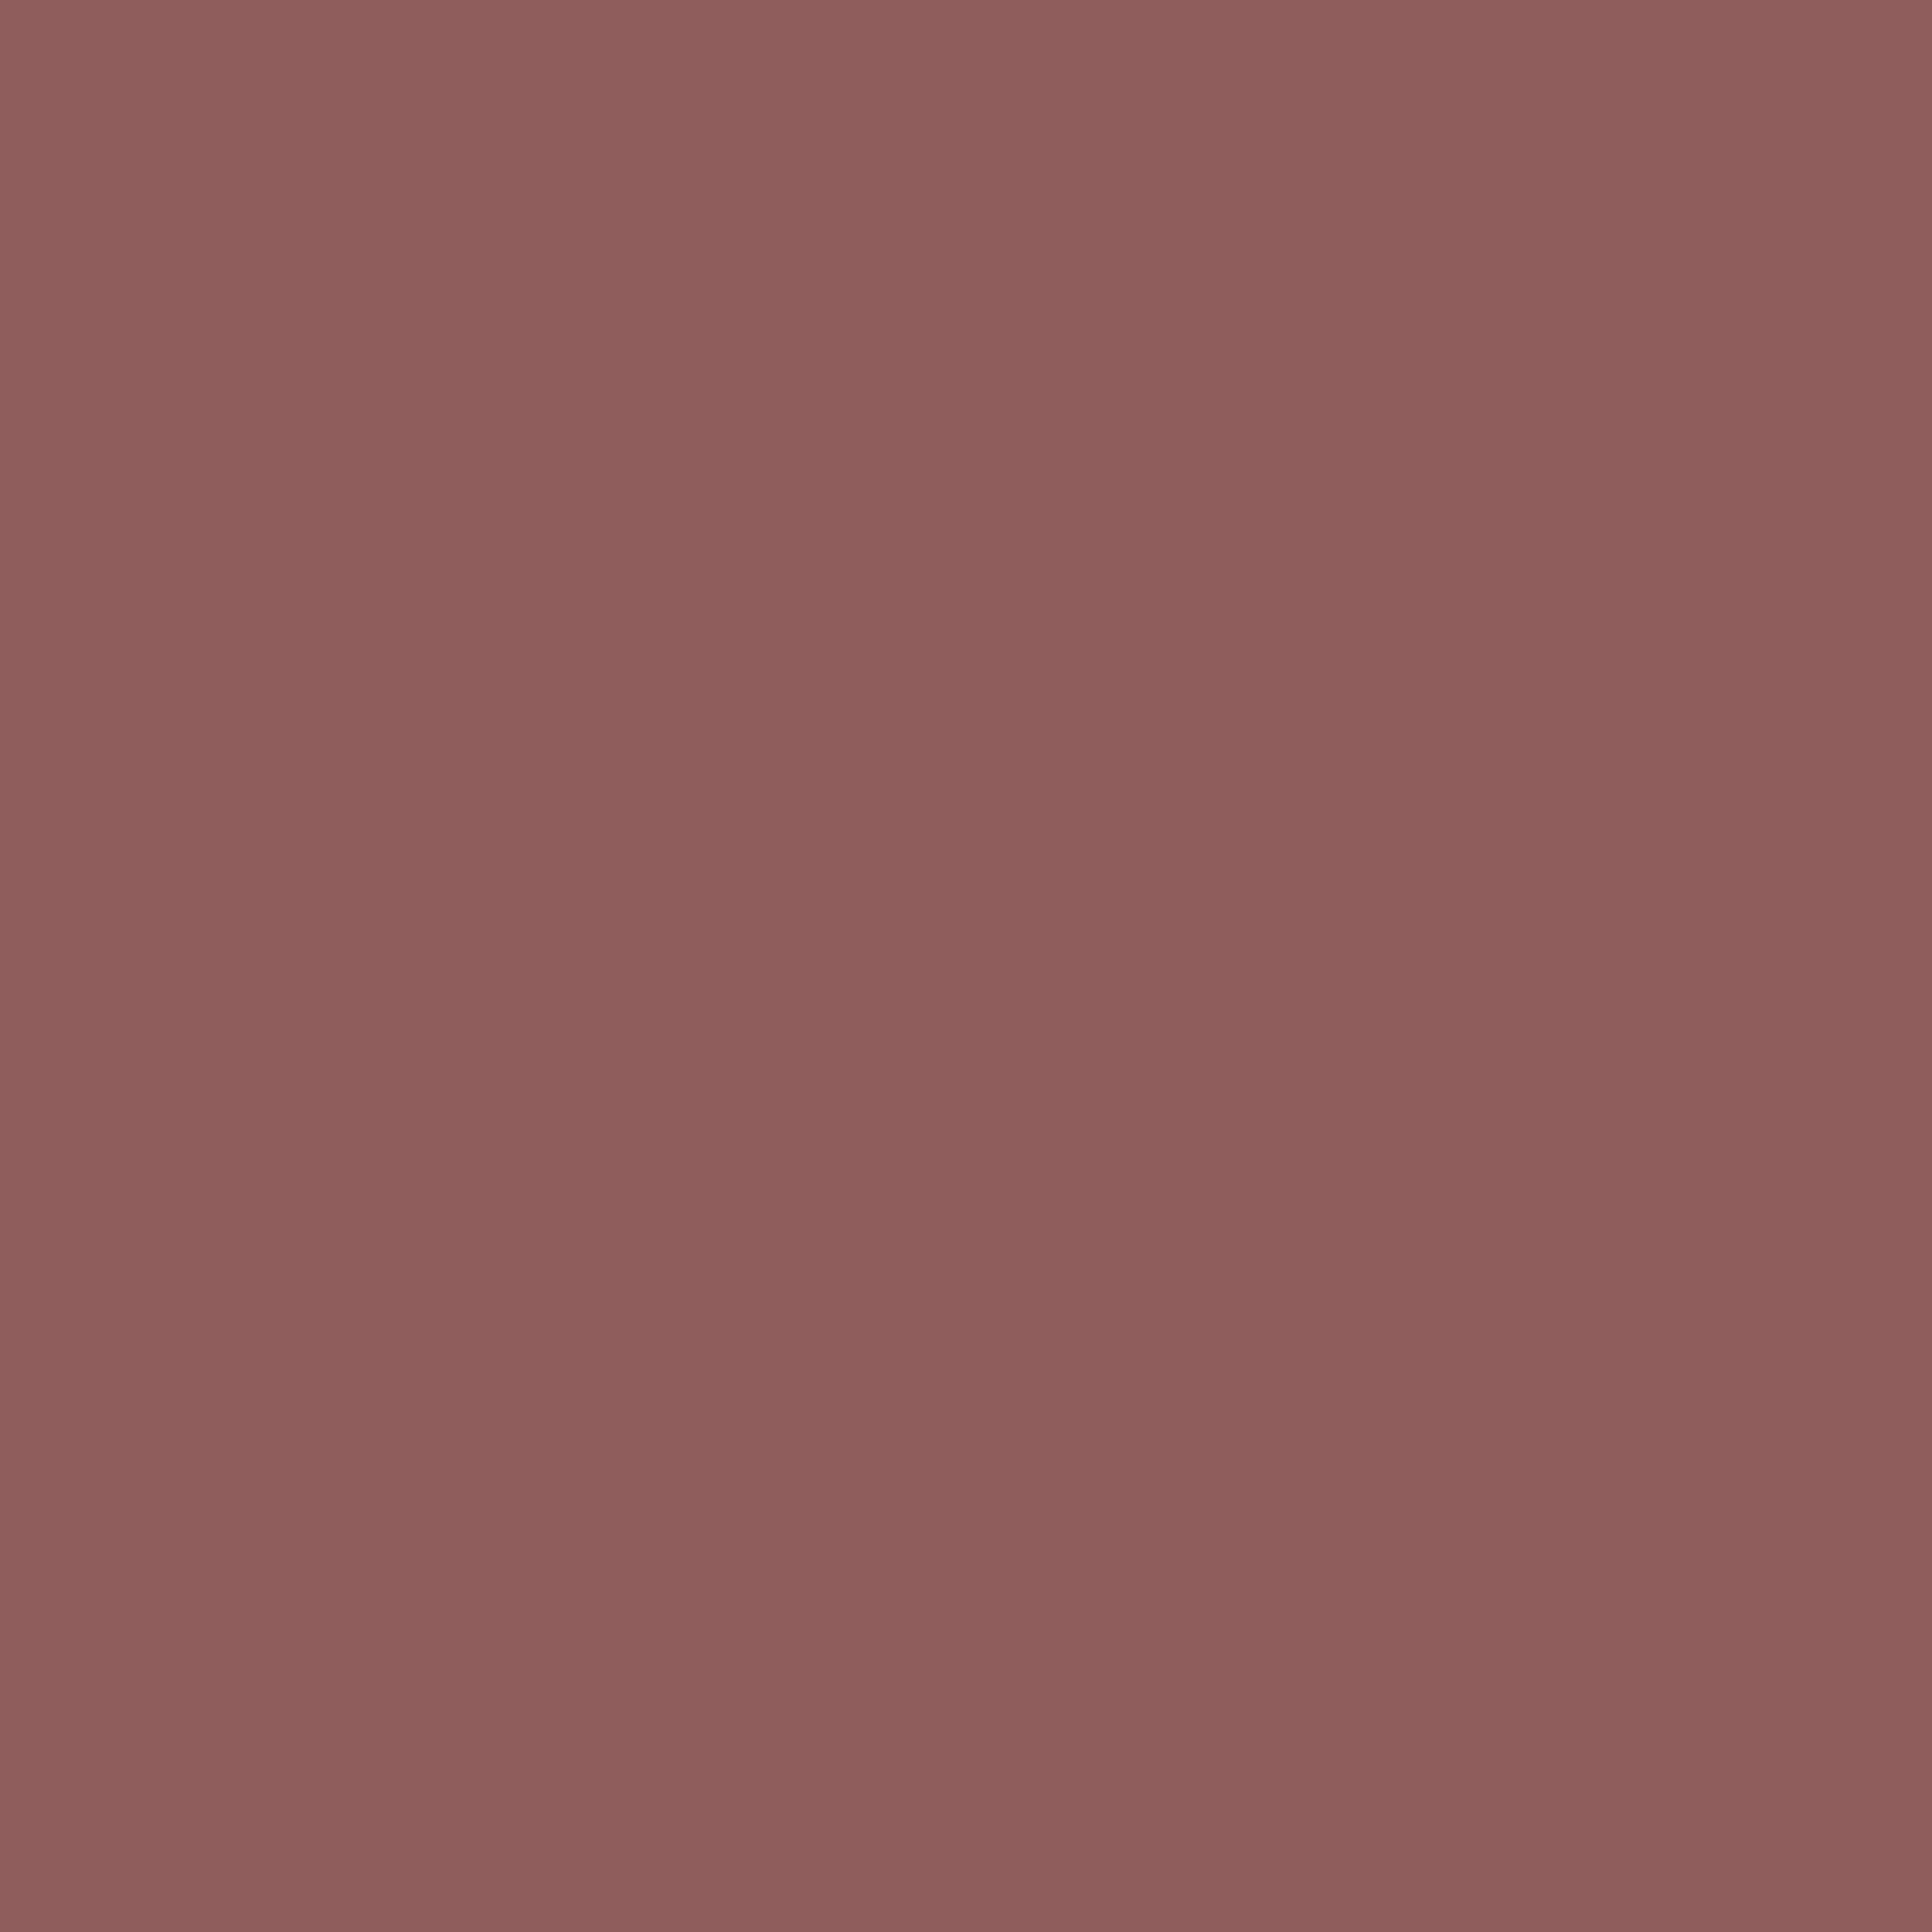 3600x3600 Rose Taupe Solid Color Background